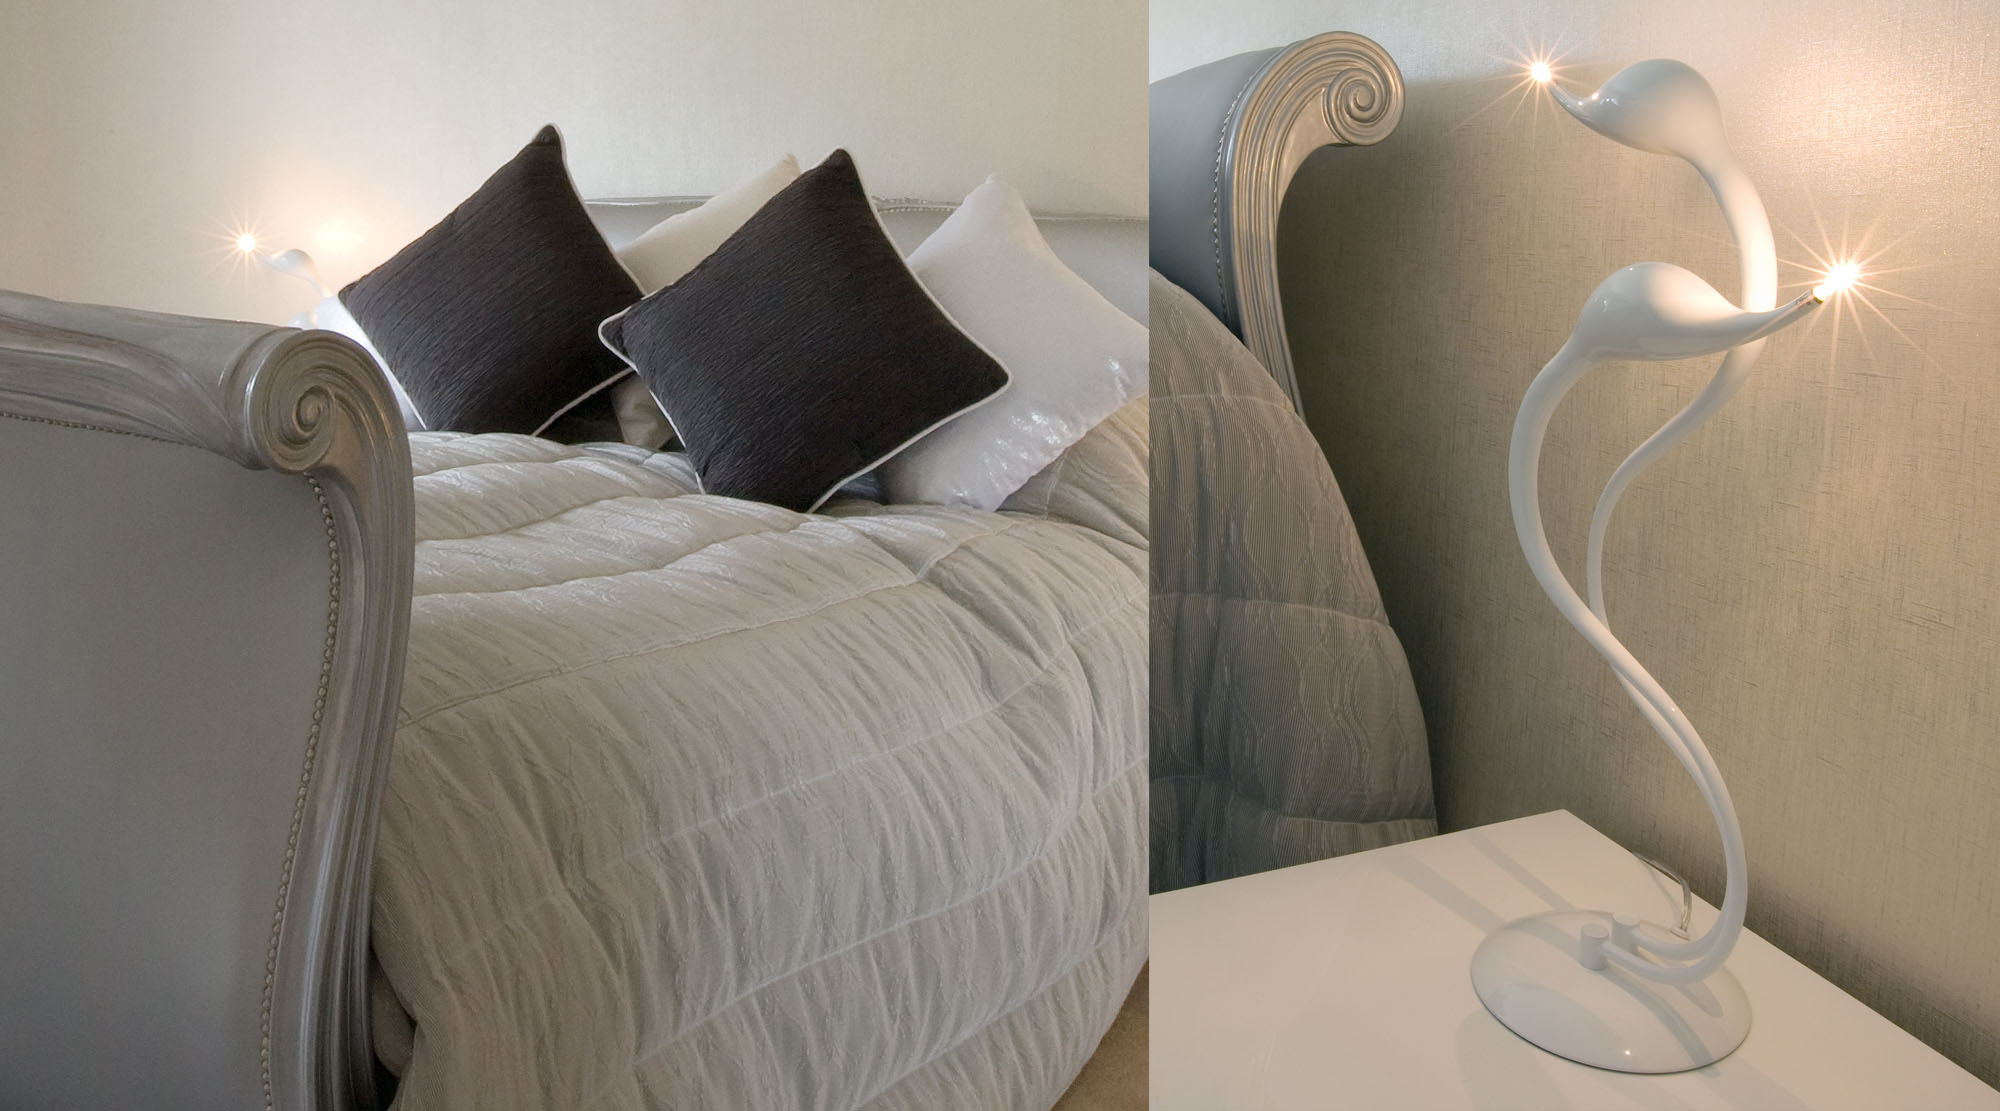 Contemporary white bedside table lamp.